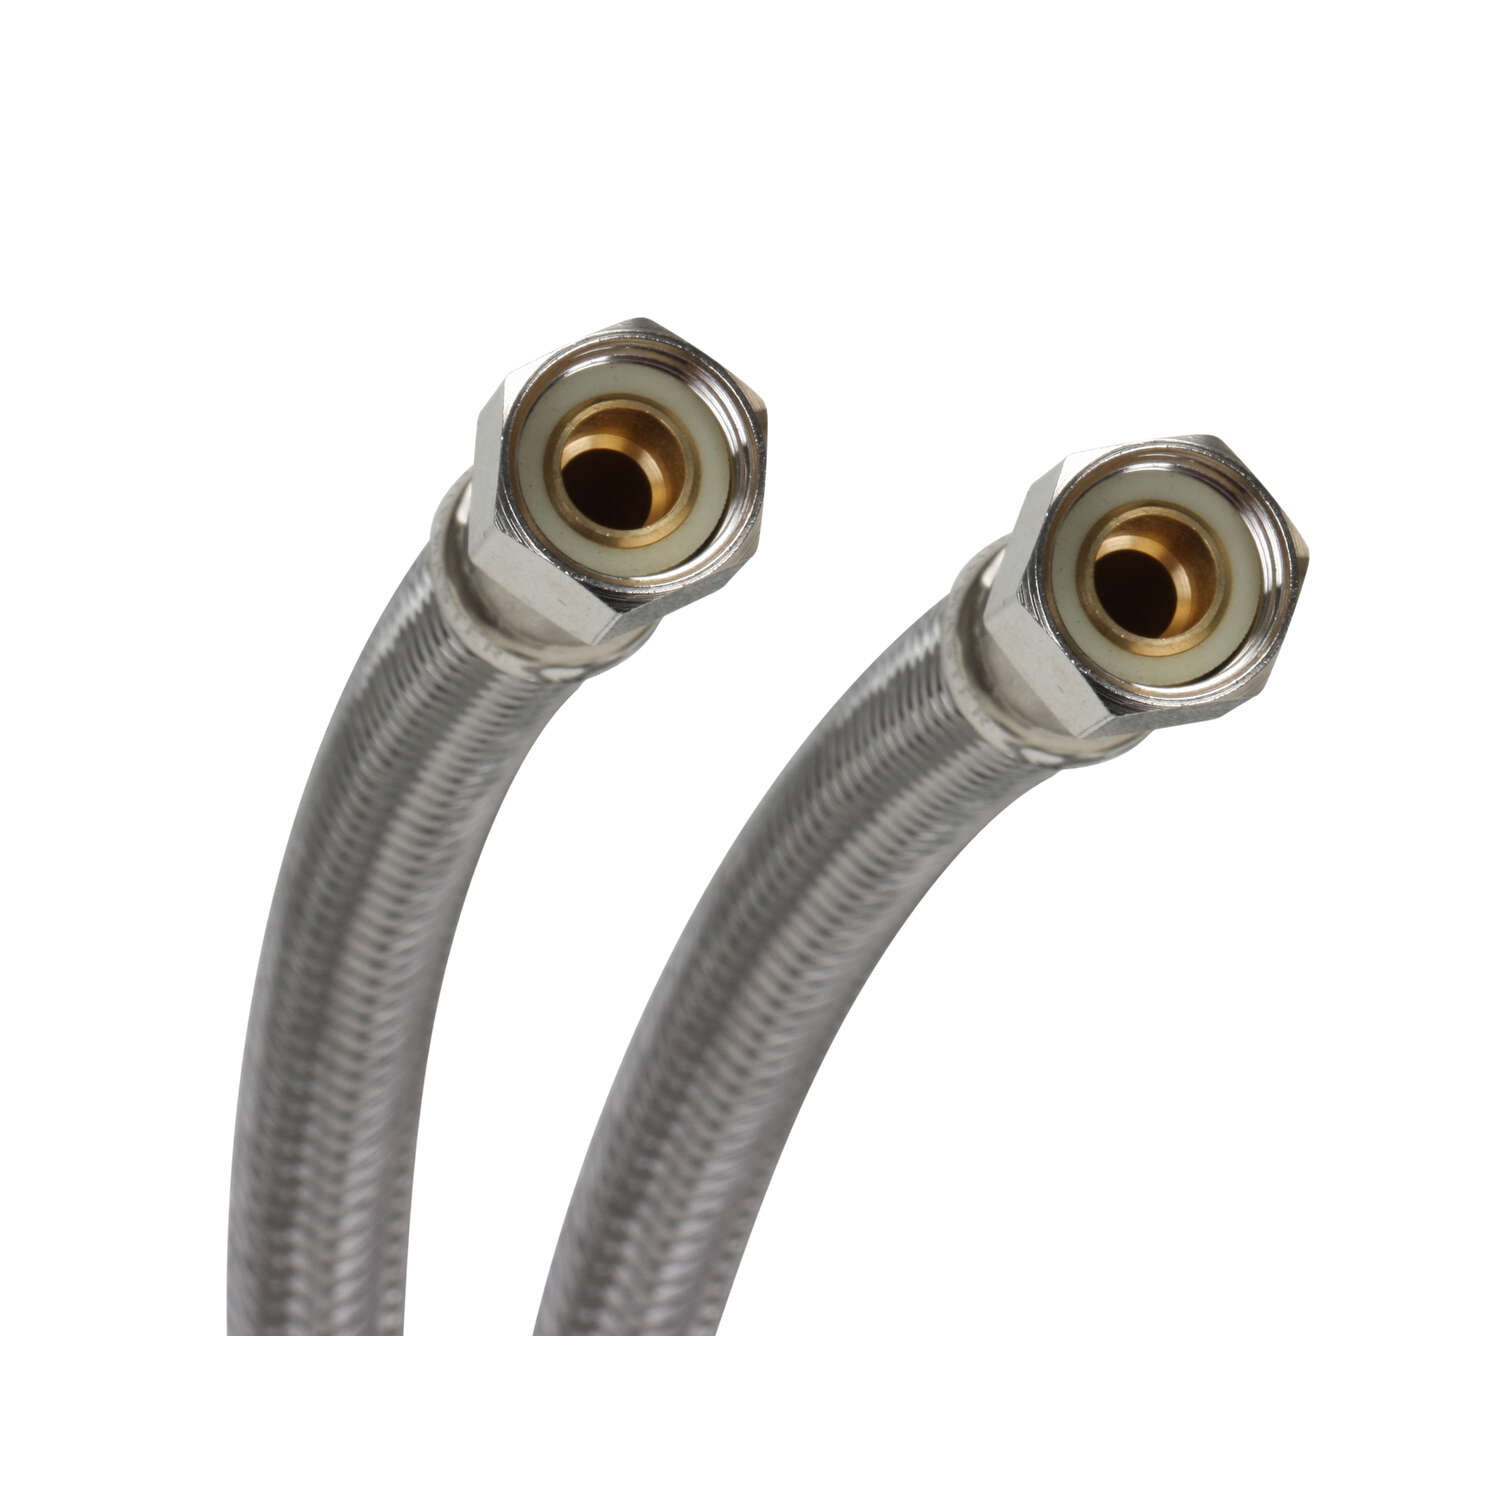 Fluidmaster  3/8 in. Compression   x 3/8 in. Dia. Compression  60 in. Stainless Steel  Supply Line